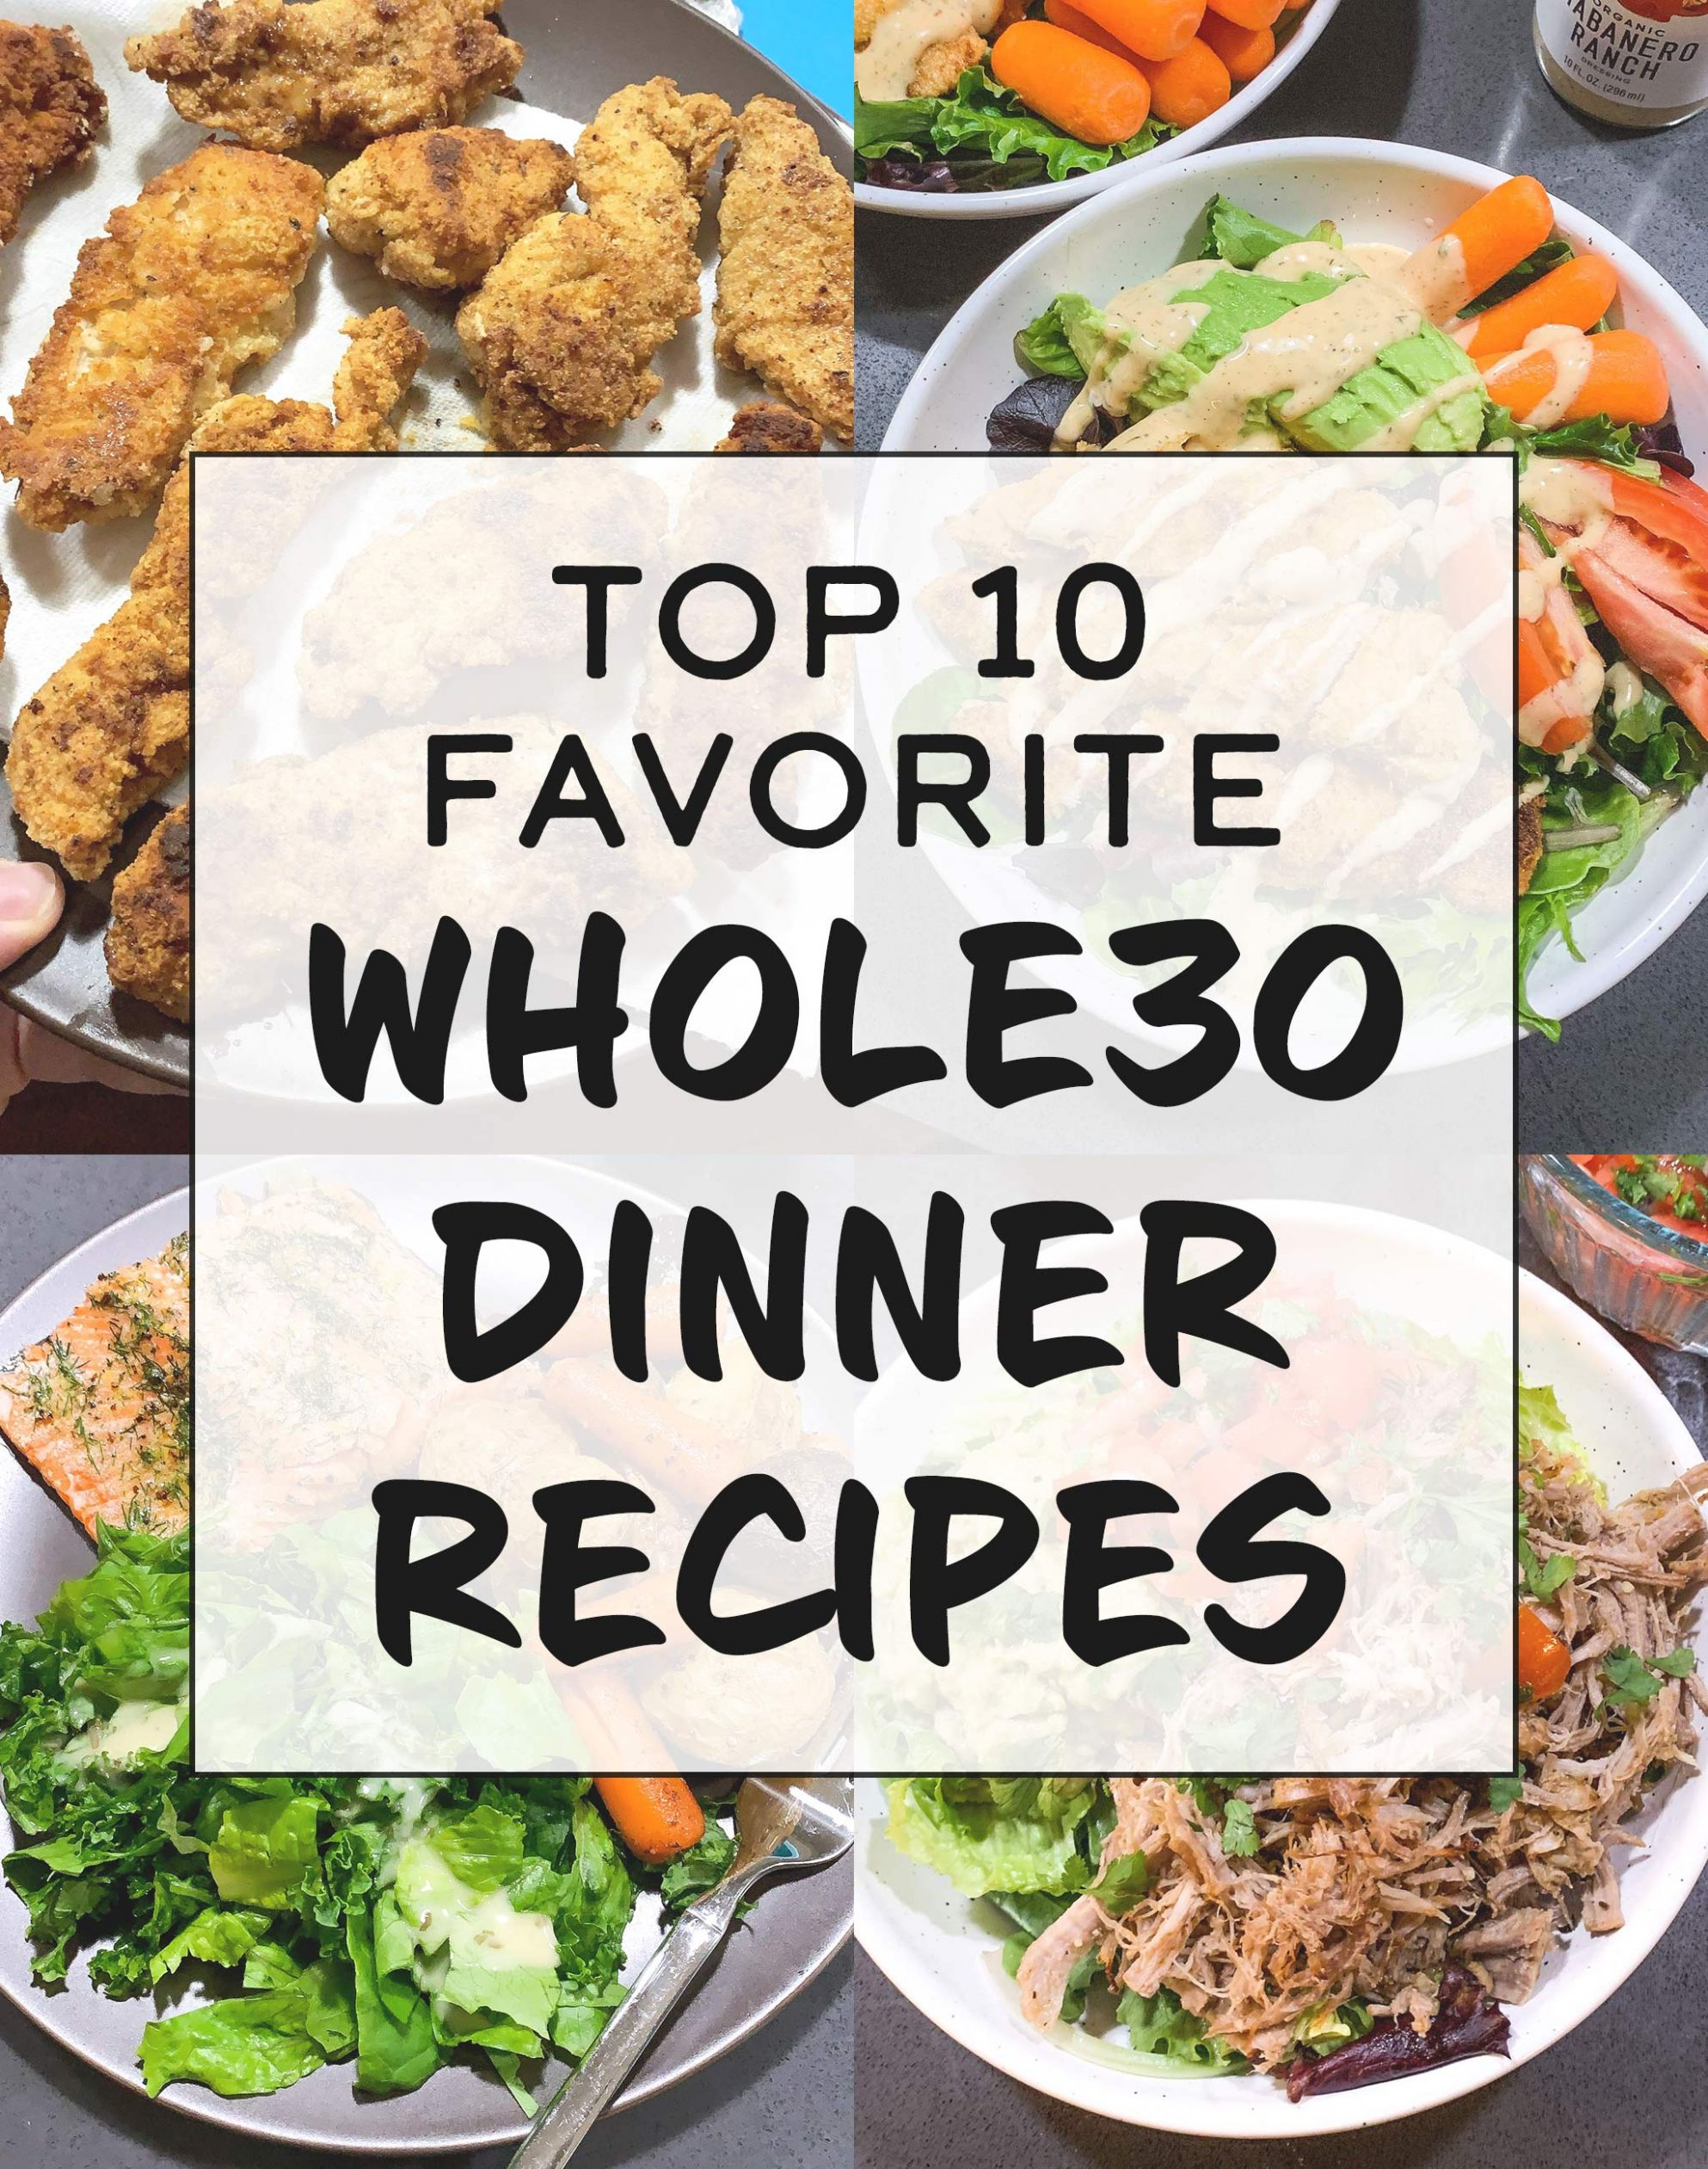 Top 8 Favorite Whole8 Dinner Recipes - Project Meal Plan - Food Recipes To M